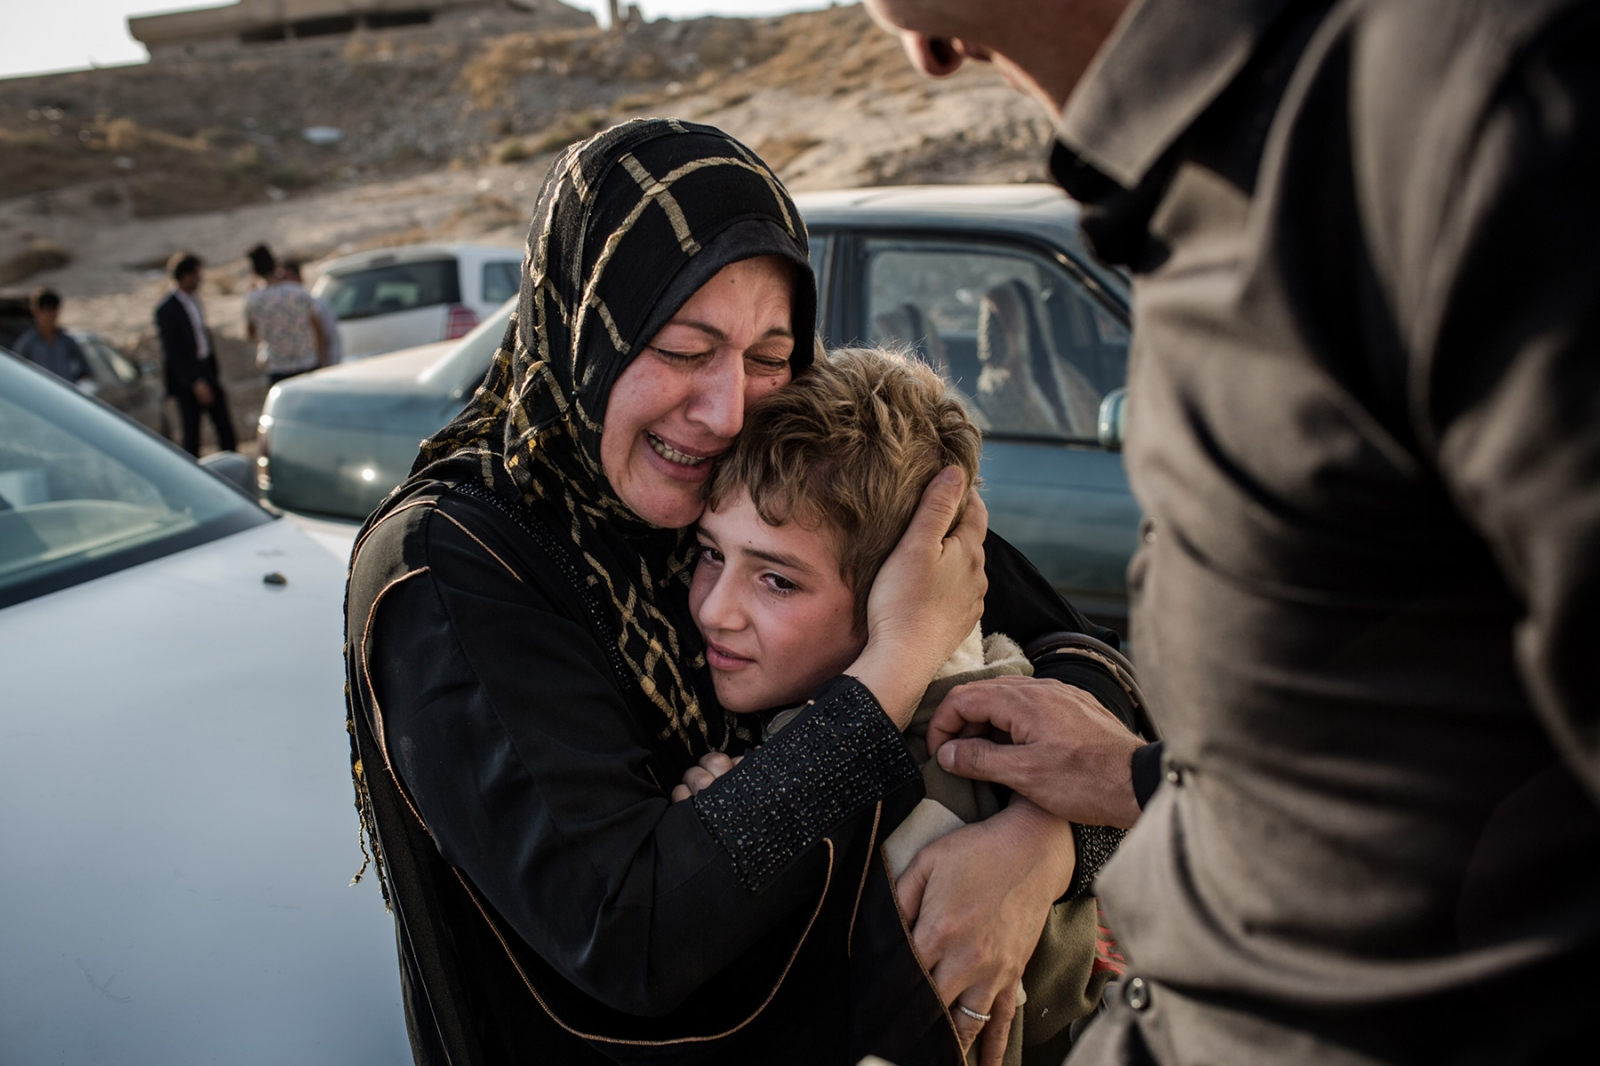 A woman cries while she cradles her son Laith, whom she had not seen for two years as they were finally reunited at the Hassan Sham camp for internally displaced persons near Mosul, Iraq, on November 7, 2016. Laith was trapped in Mosul when it fell to ISIS in 2014. Laith's mother, who could not go back to their home in Mosul, was forced to stay outside of ISIS territory, longing for the day to see her son again.